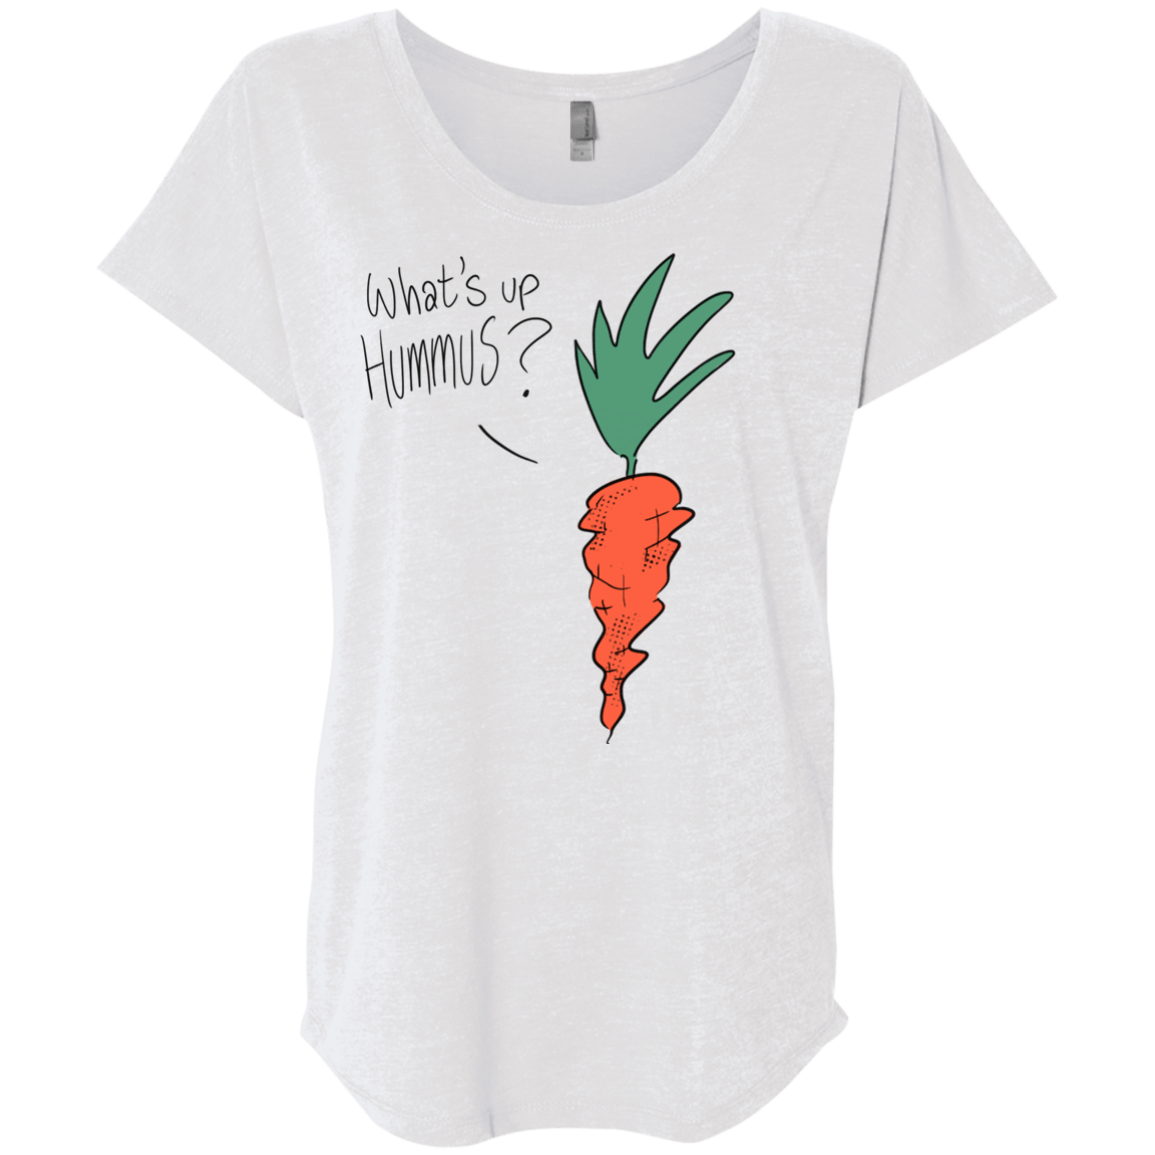 What's up Hummus? Carrot T-Shirt